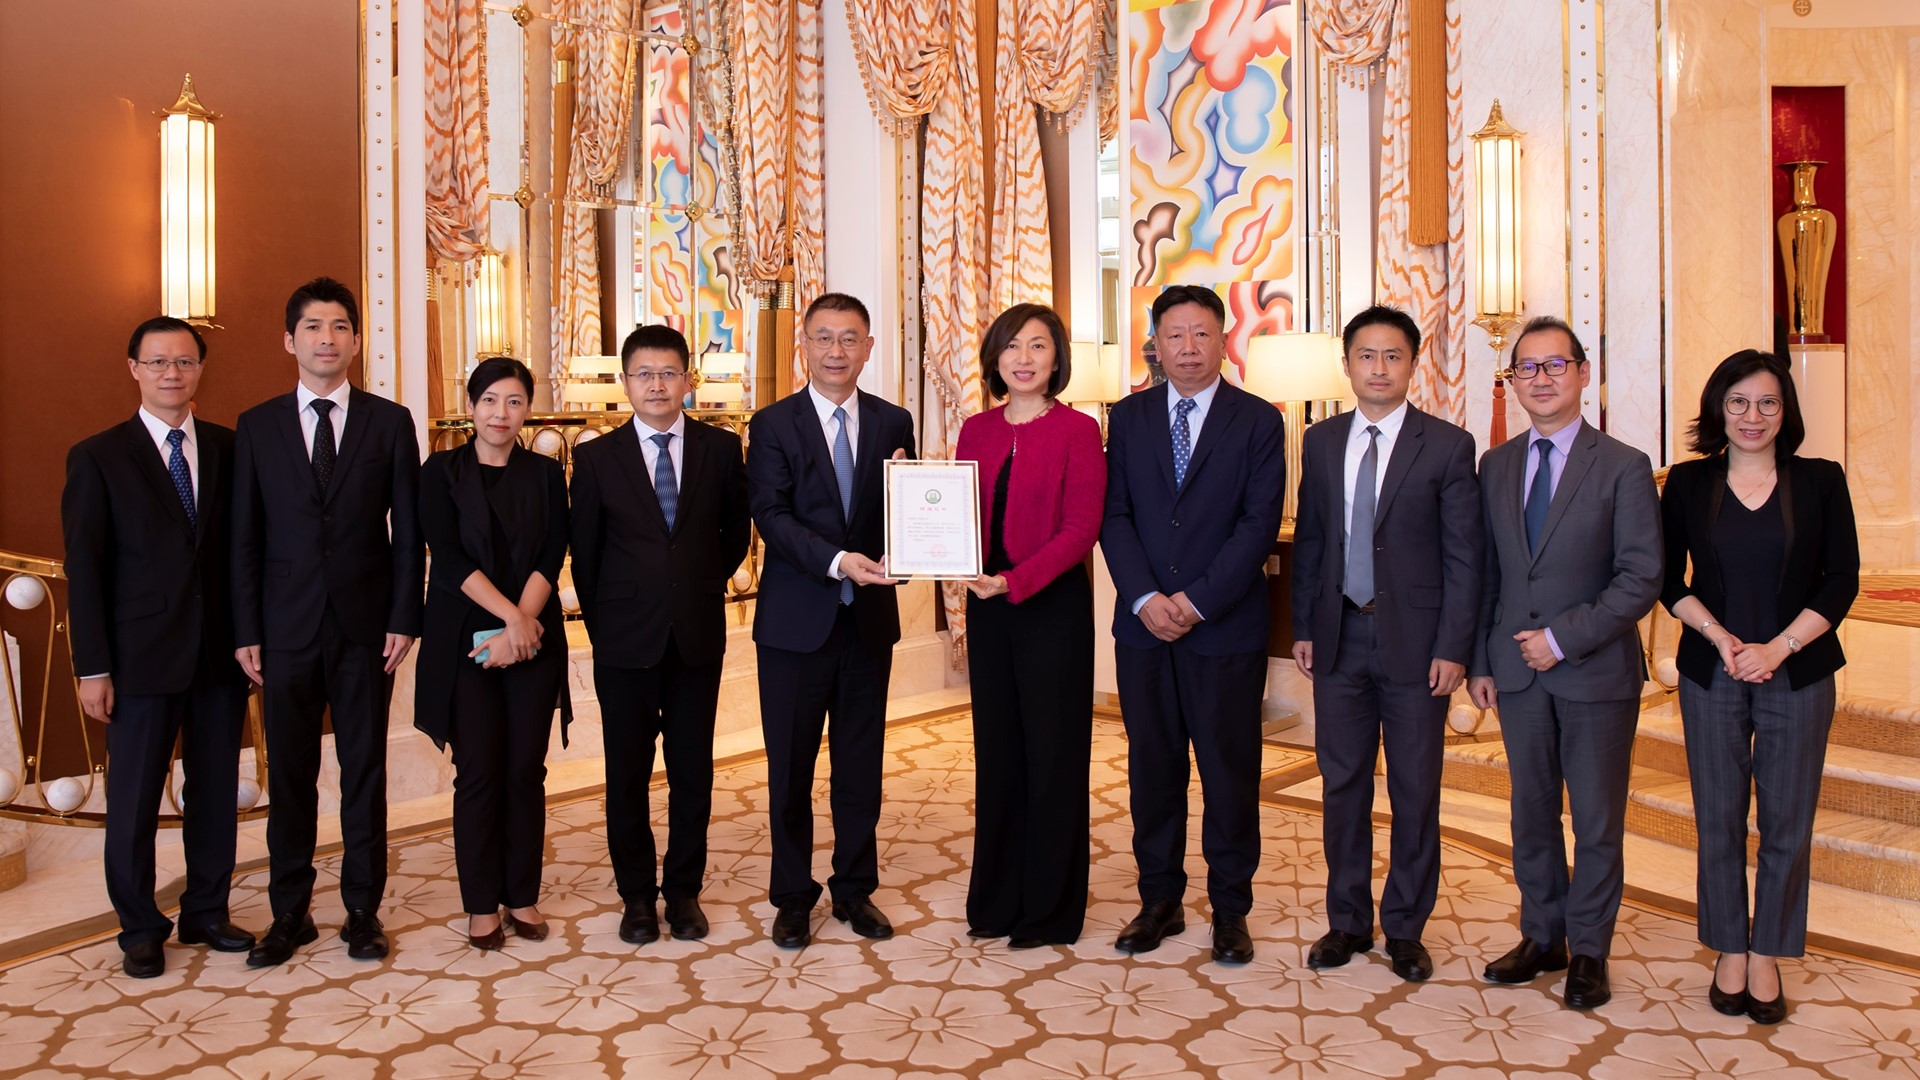 Liaison Office recognizes Wynn for its contributions during pandemic